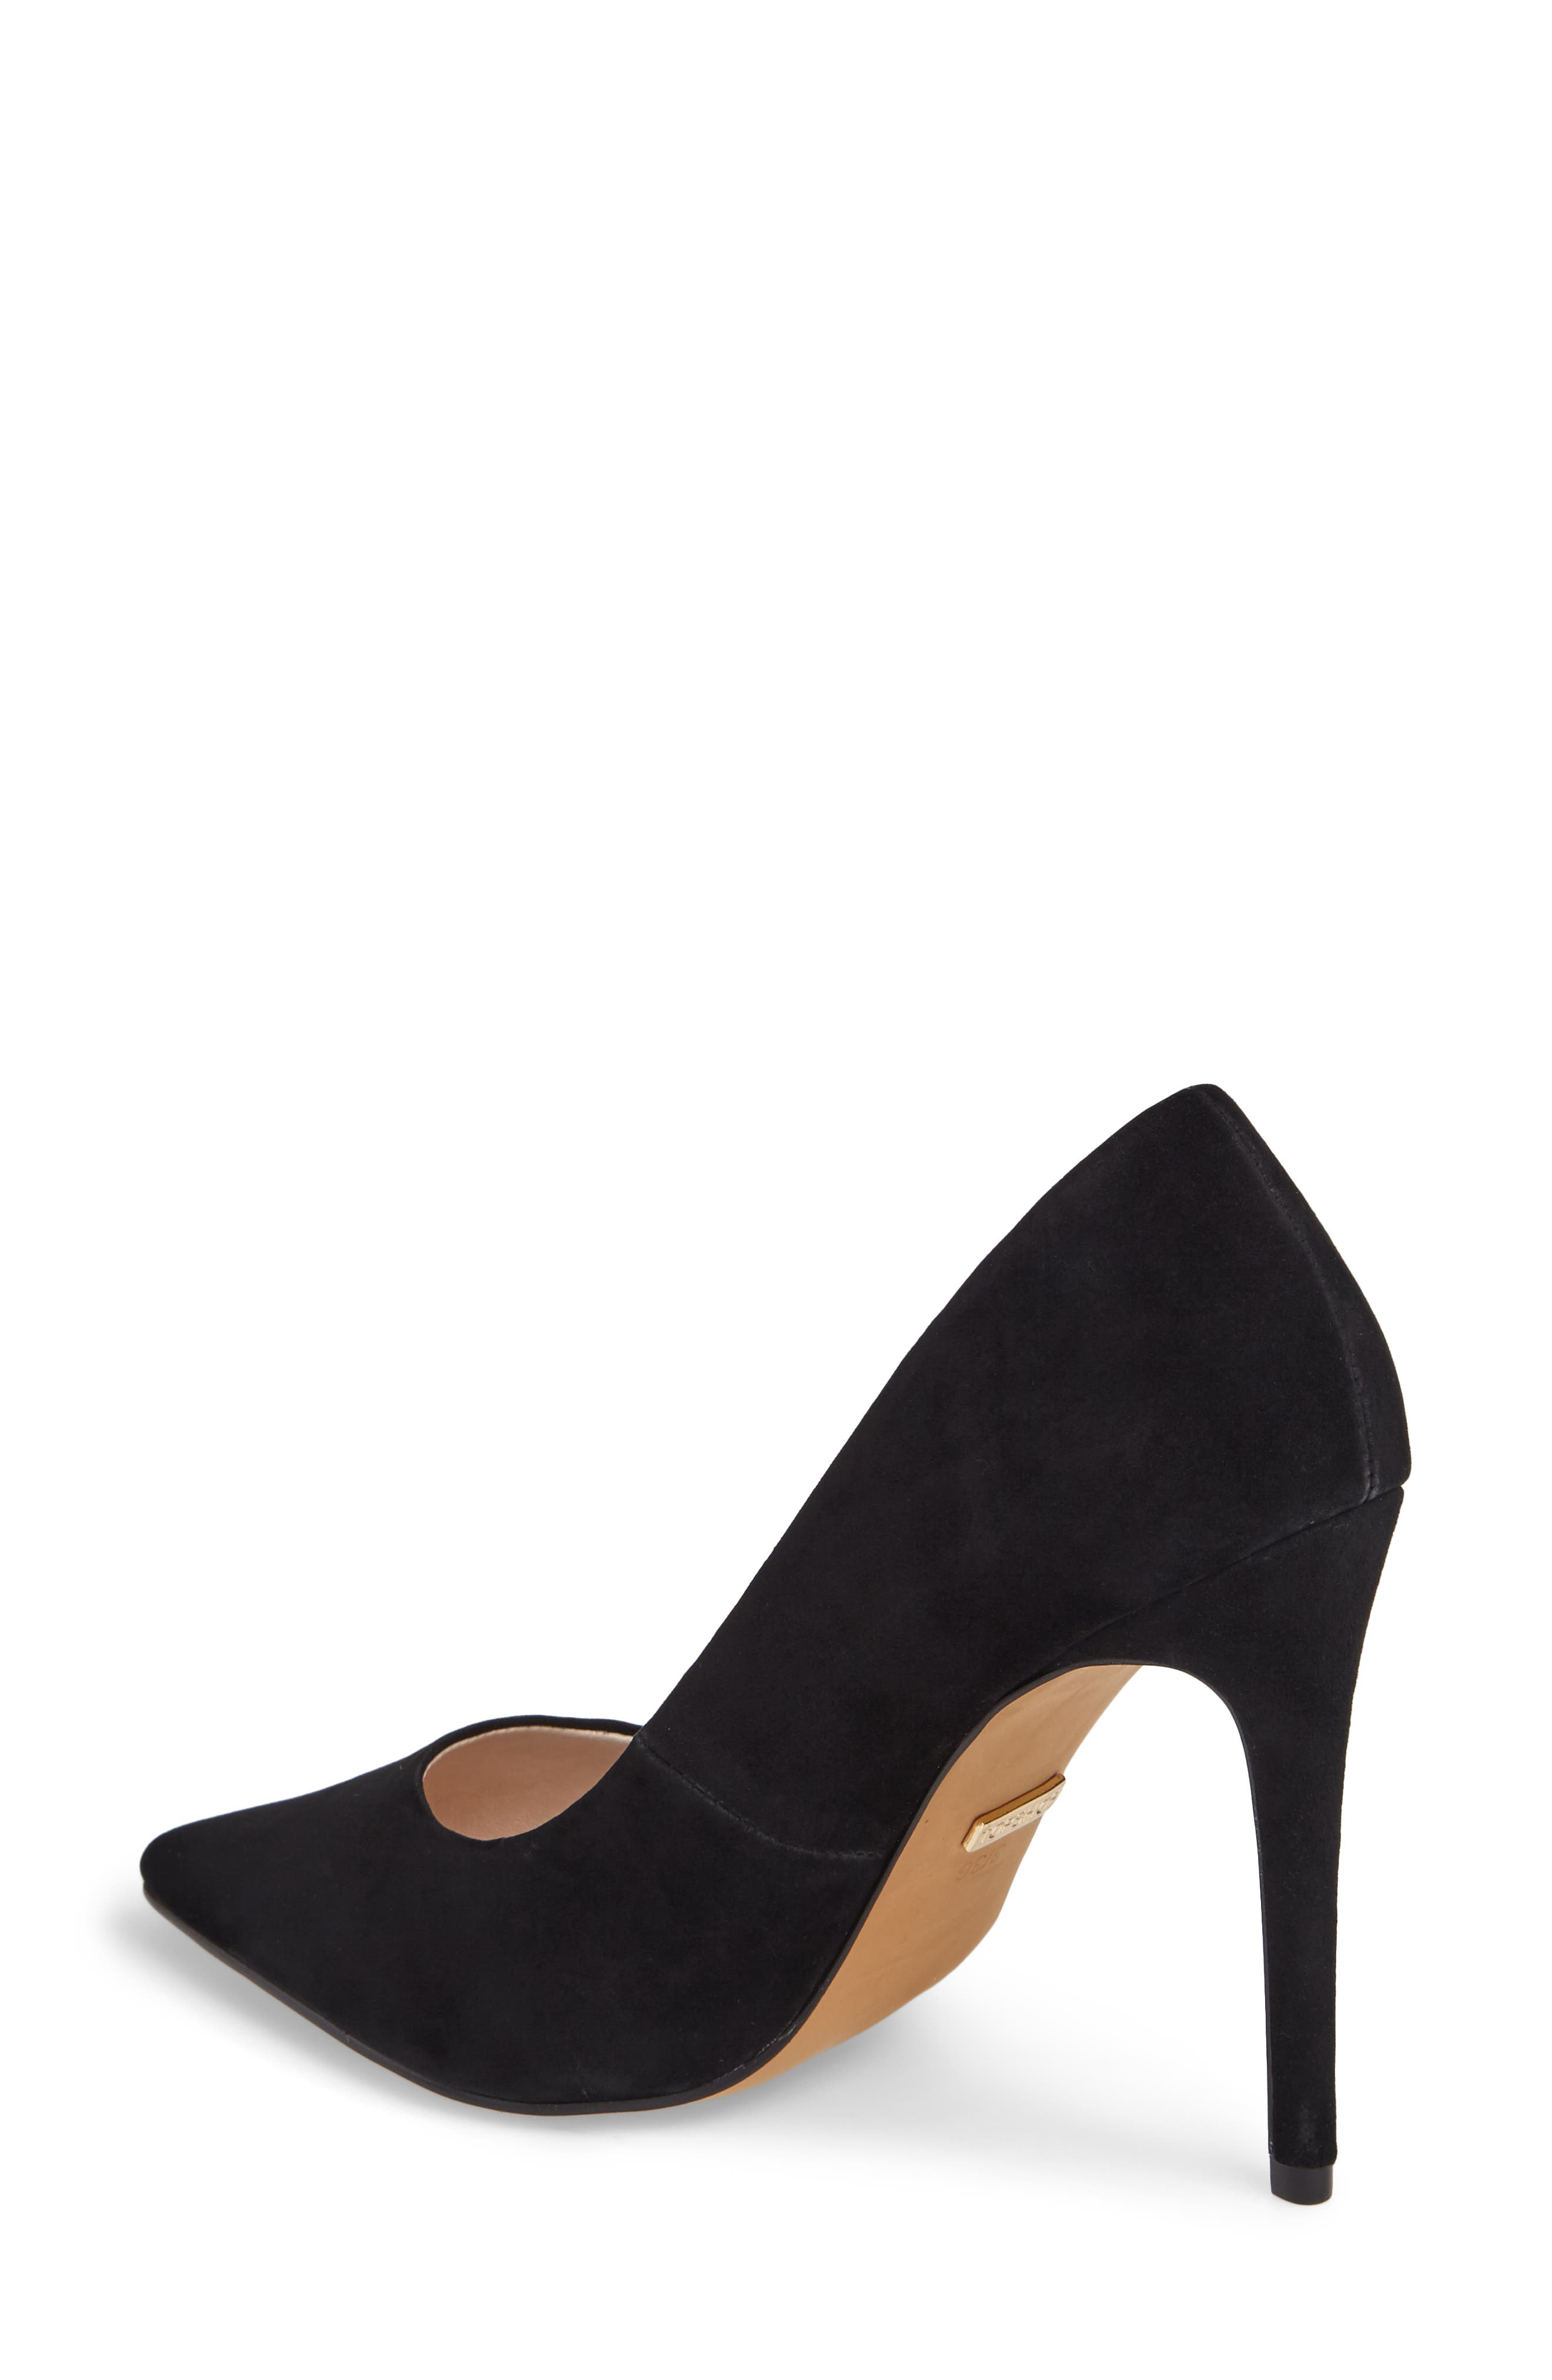 Grammer Pointy Toe Pump,                             Alternate thumbnail 2, color,                             Black Leather